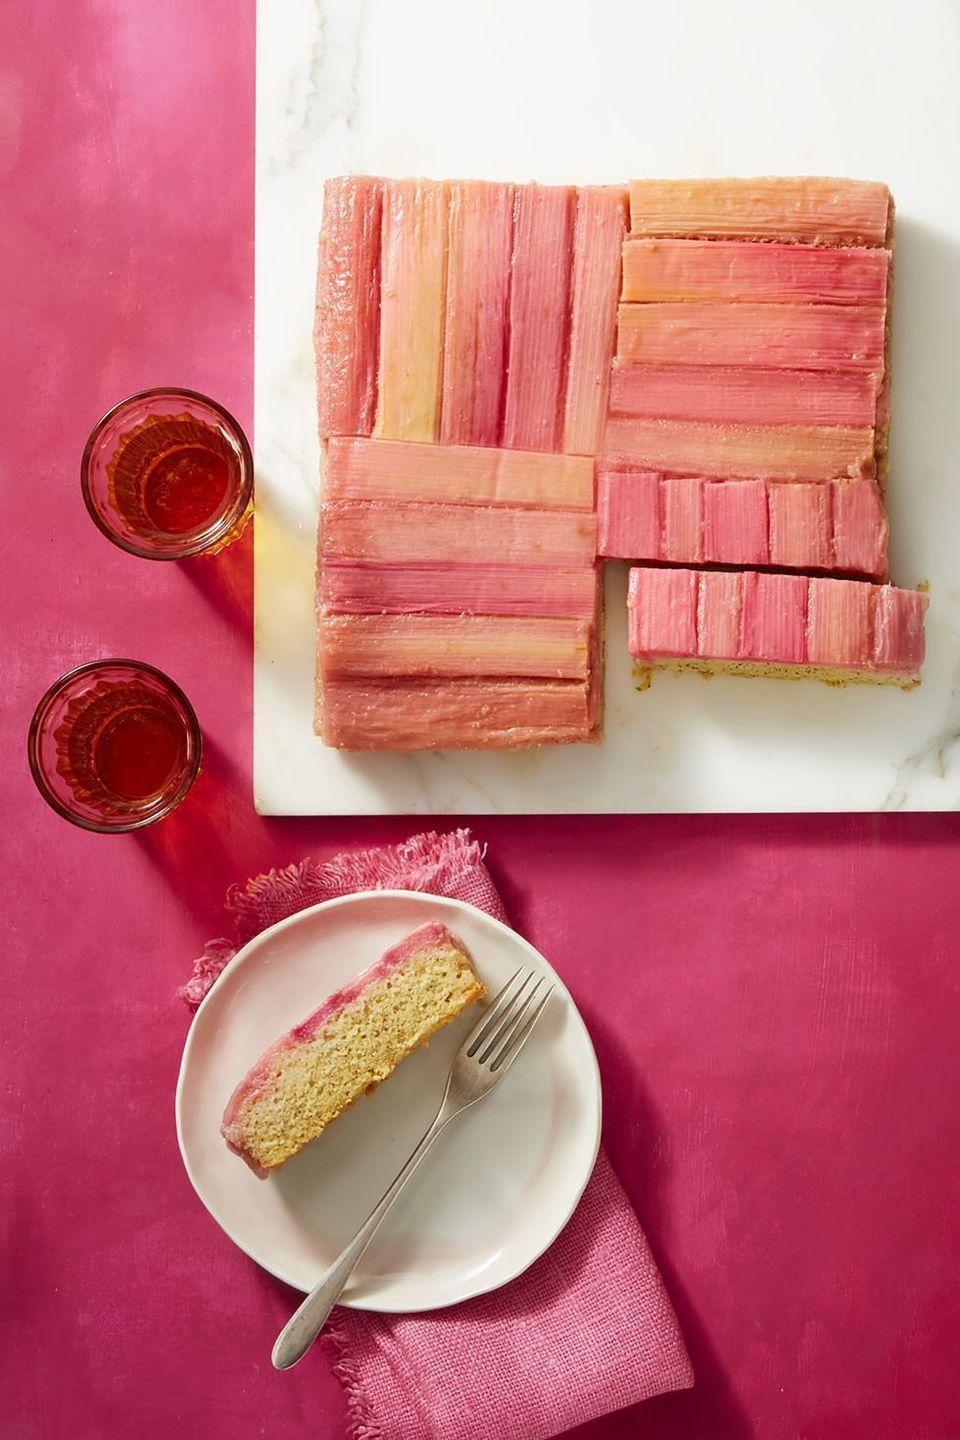 "<p>Mom might be the only person who loves rhubarb. That is, until the rest of your family gets a taste of this pink sheet cake. </p><p><em><a href=""https://www.womansday.com/food-recipes/food-drinks/a19810598/rhubarb-and-almond-upside-down-cake-recipe/"" rel=""nofollow noopener"" target=""_blank"" data-ylk=""slk:Get the recipe from Woman's Day »"" class=""link rapid-noclick-resp"">Get the recipe from Woman's Day »</a></em></p>"